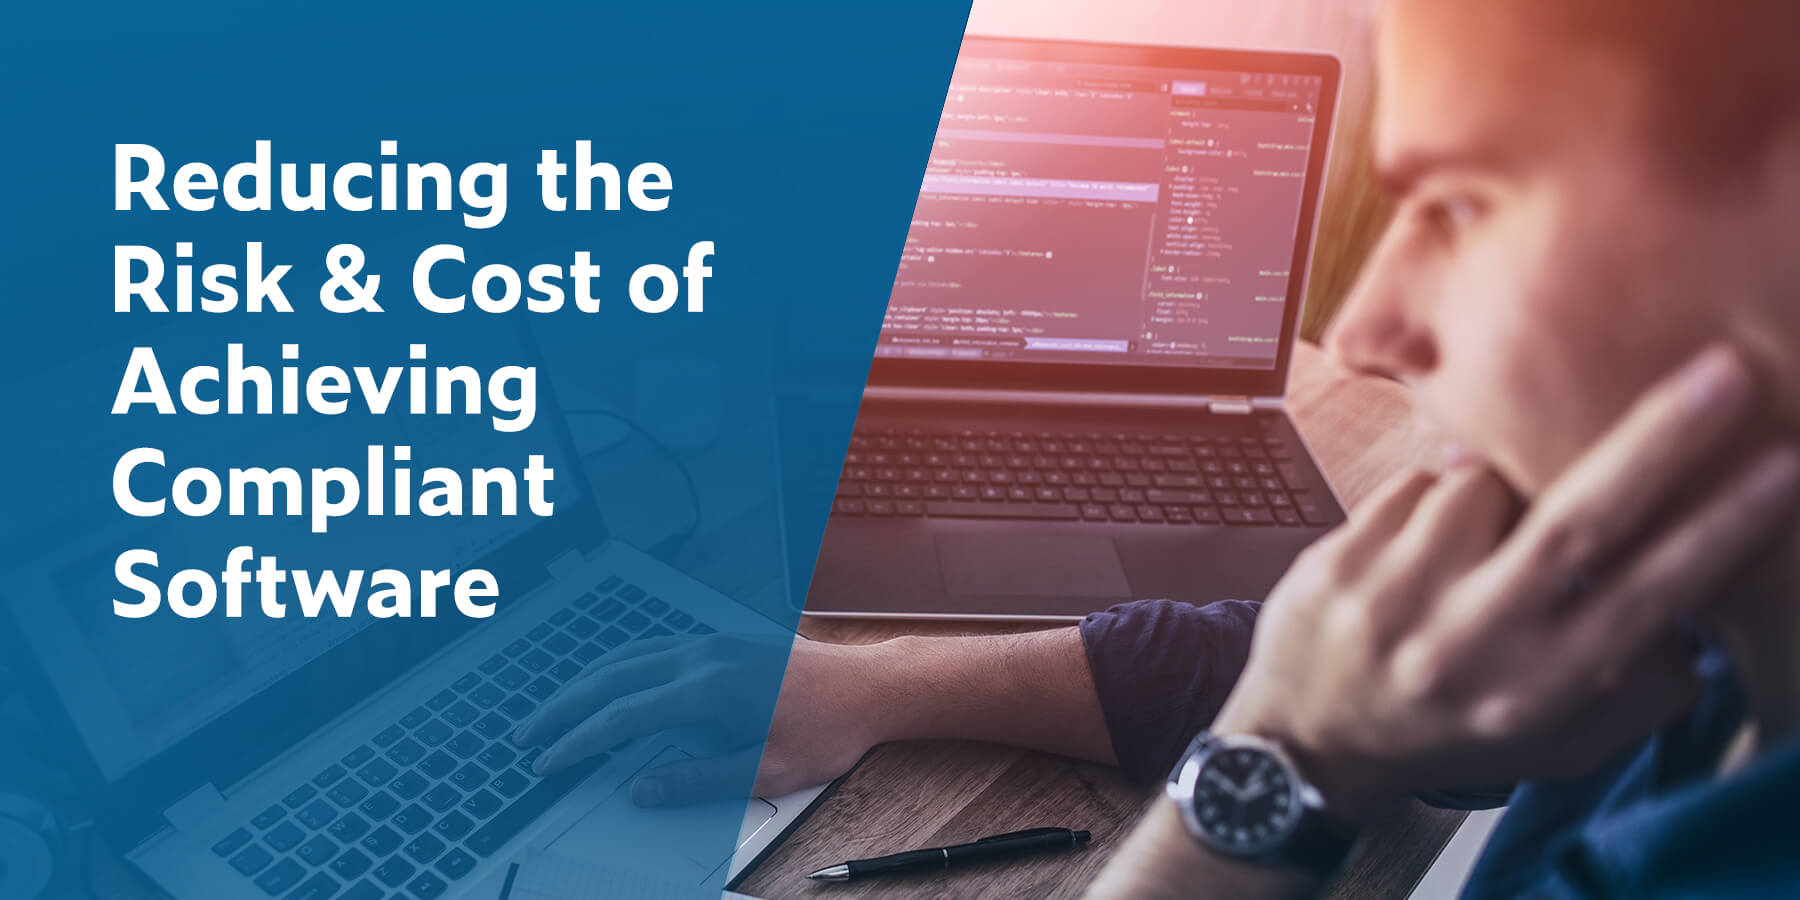 Reducing the Risk and Cost of Achieving Compliant Software